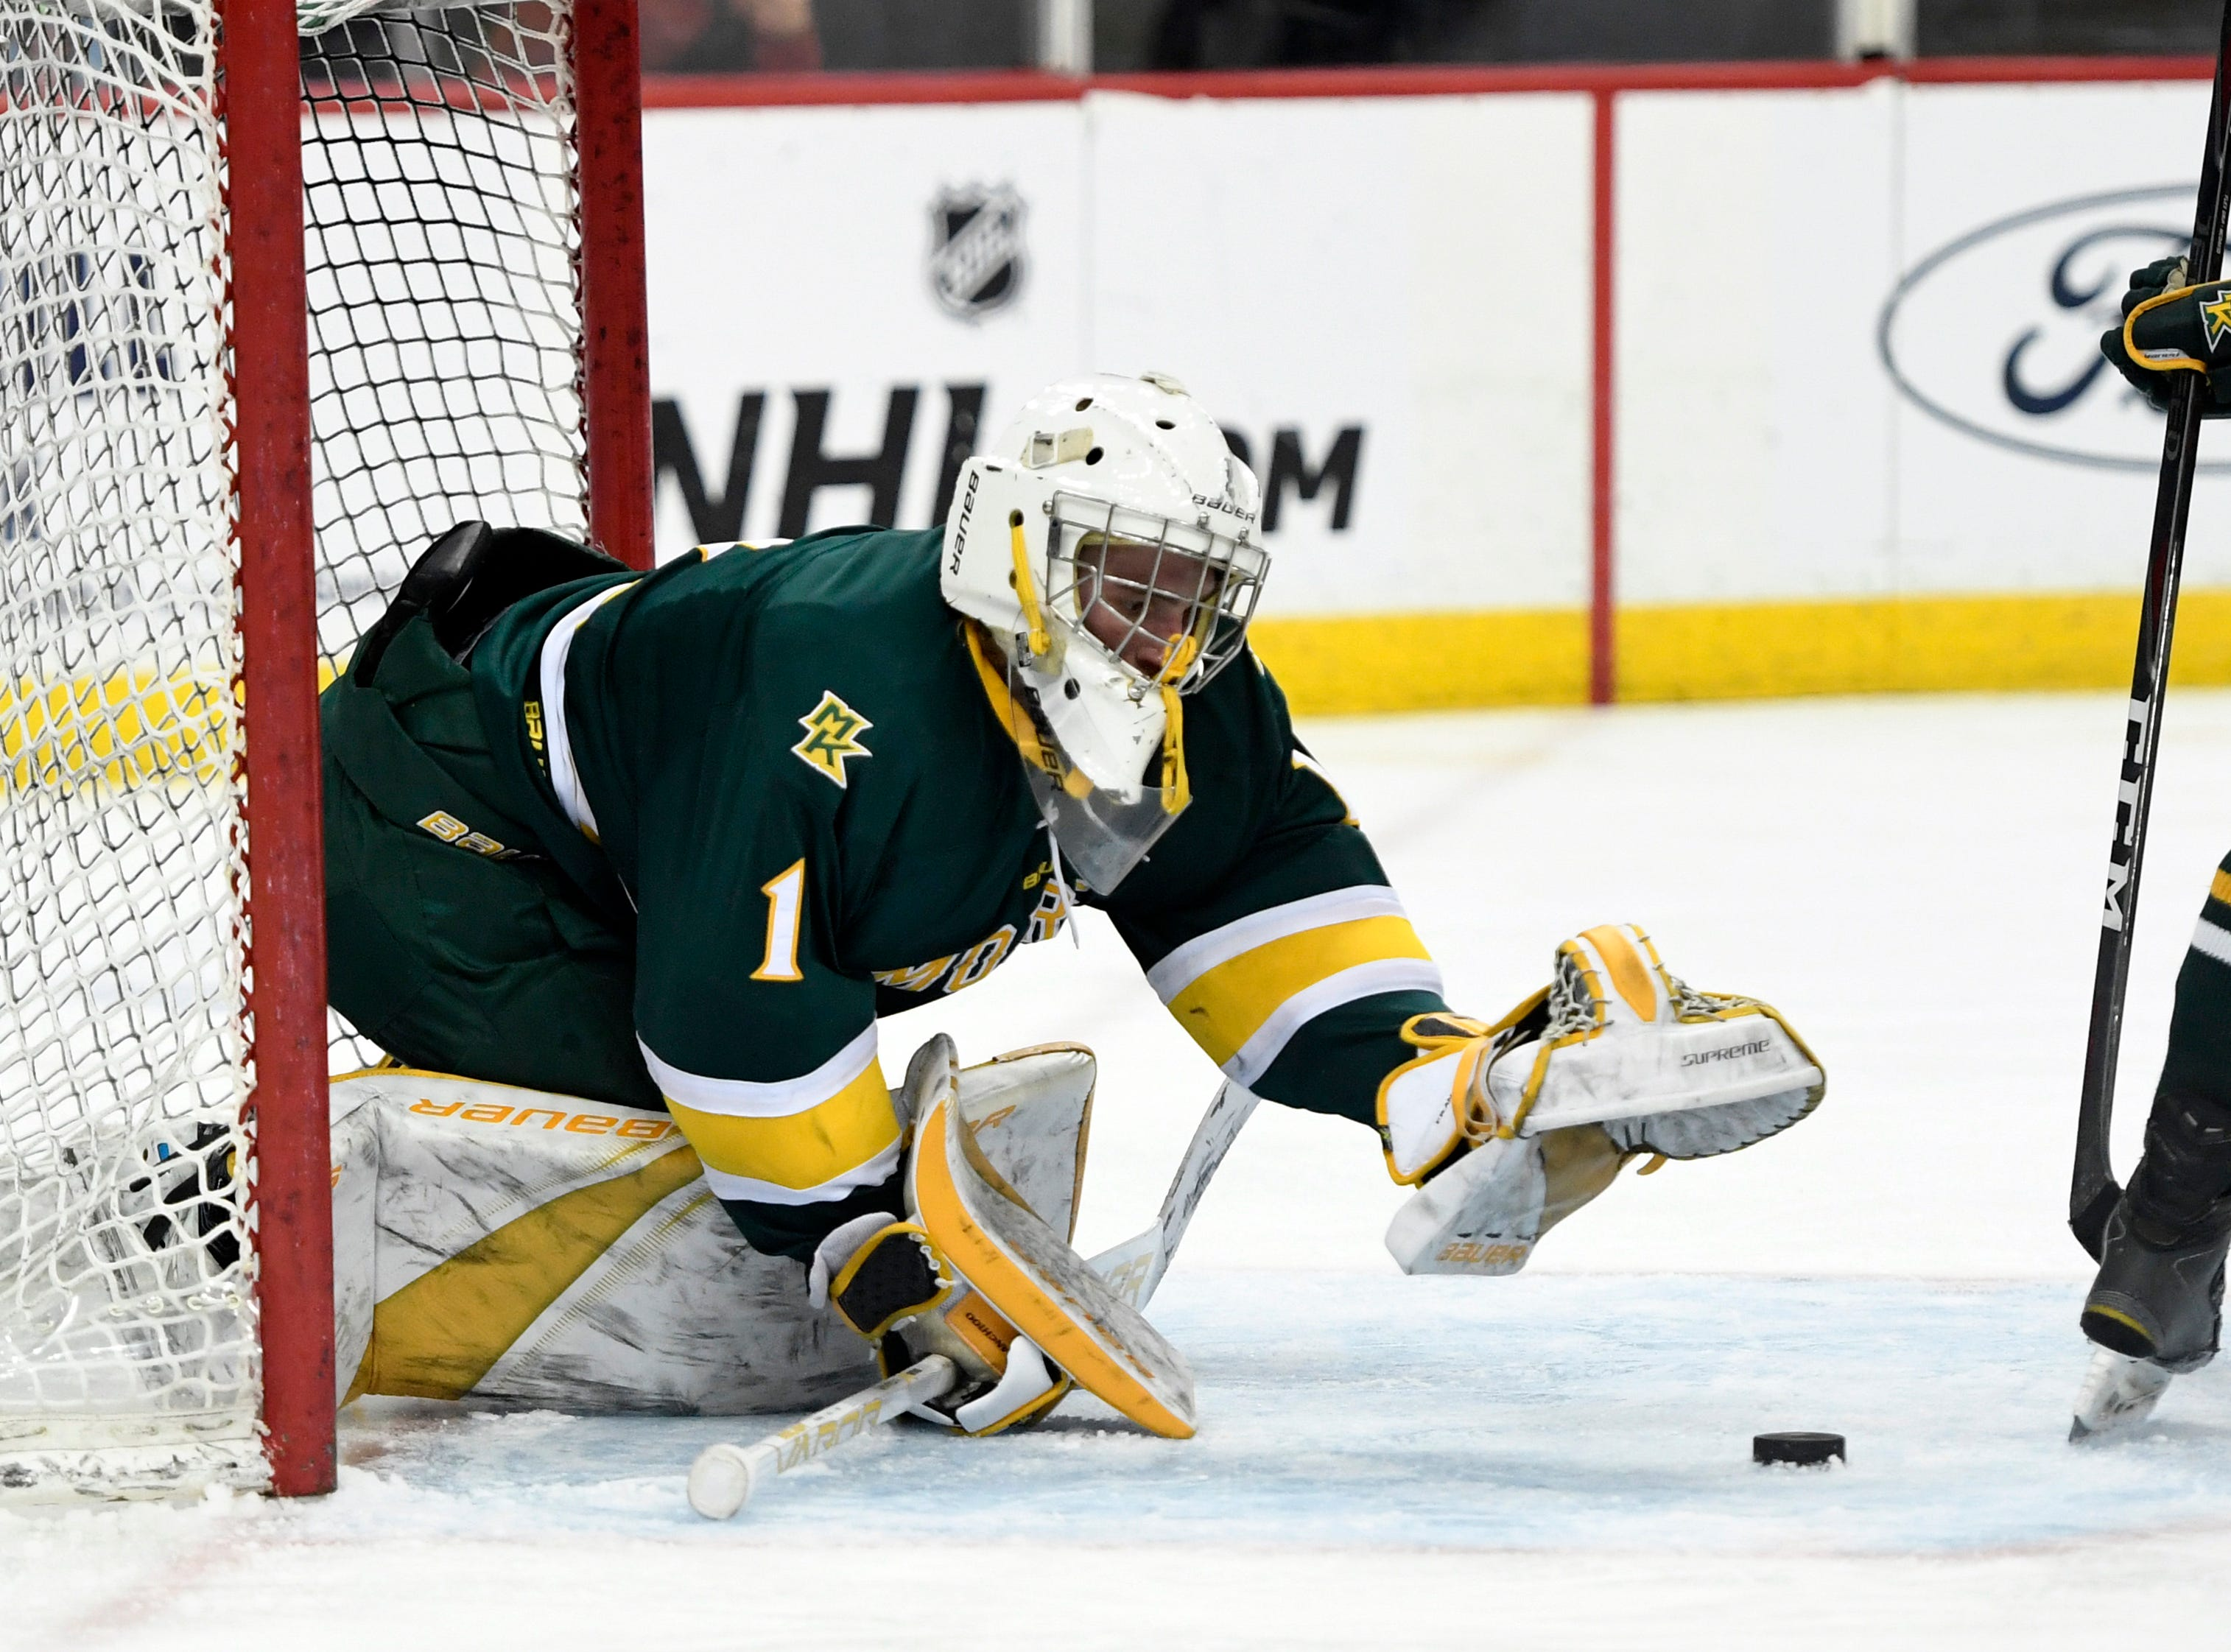 Morris Knolls/Hills goalie Ty Franchi makes a save against Hillsborough in the third period. Morris Knolls/Hills defeats Hillsborough 6-1 in the Public A ice hockey final at the Prudential Center on Monday, March 4, 2019, in Newark.